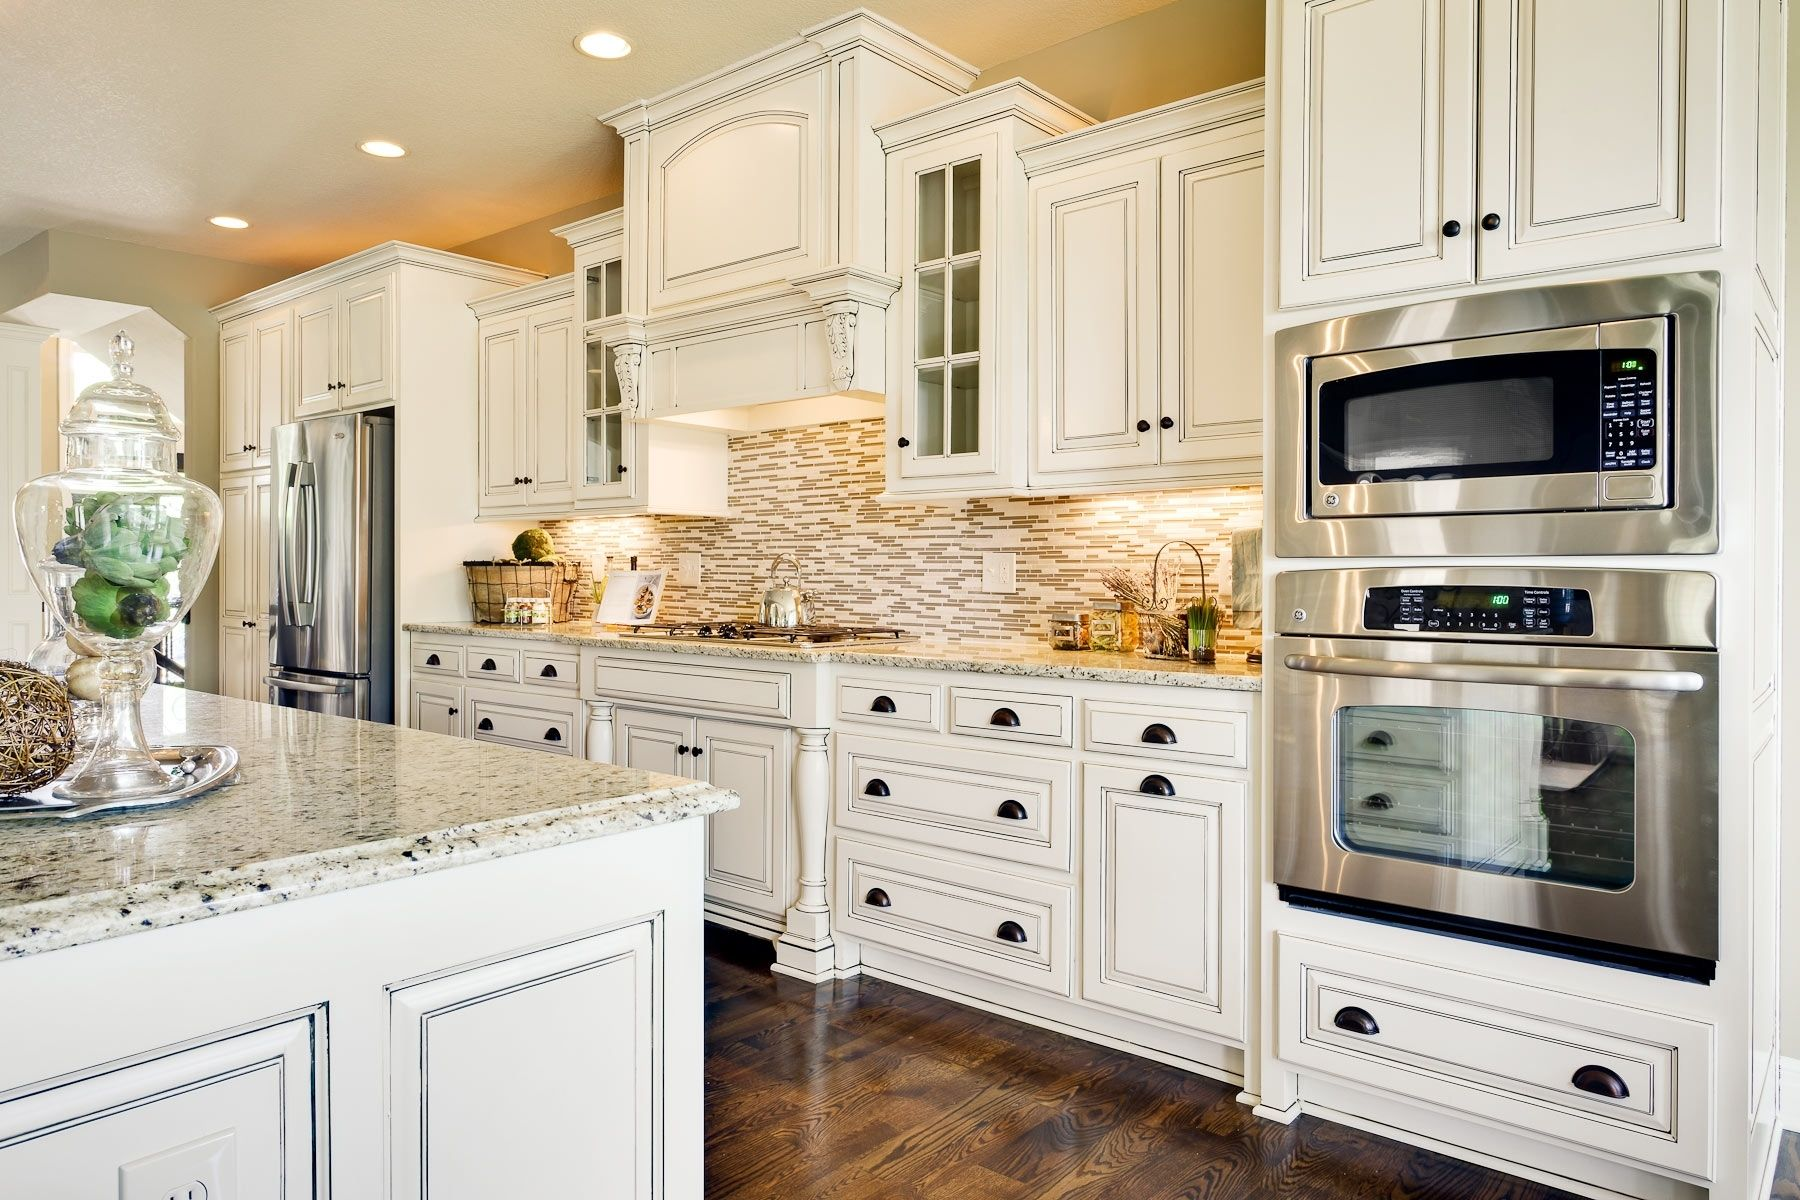 Pin On Dream Homes And Kitchens